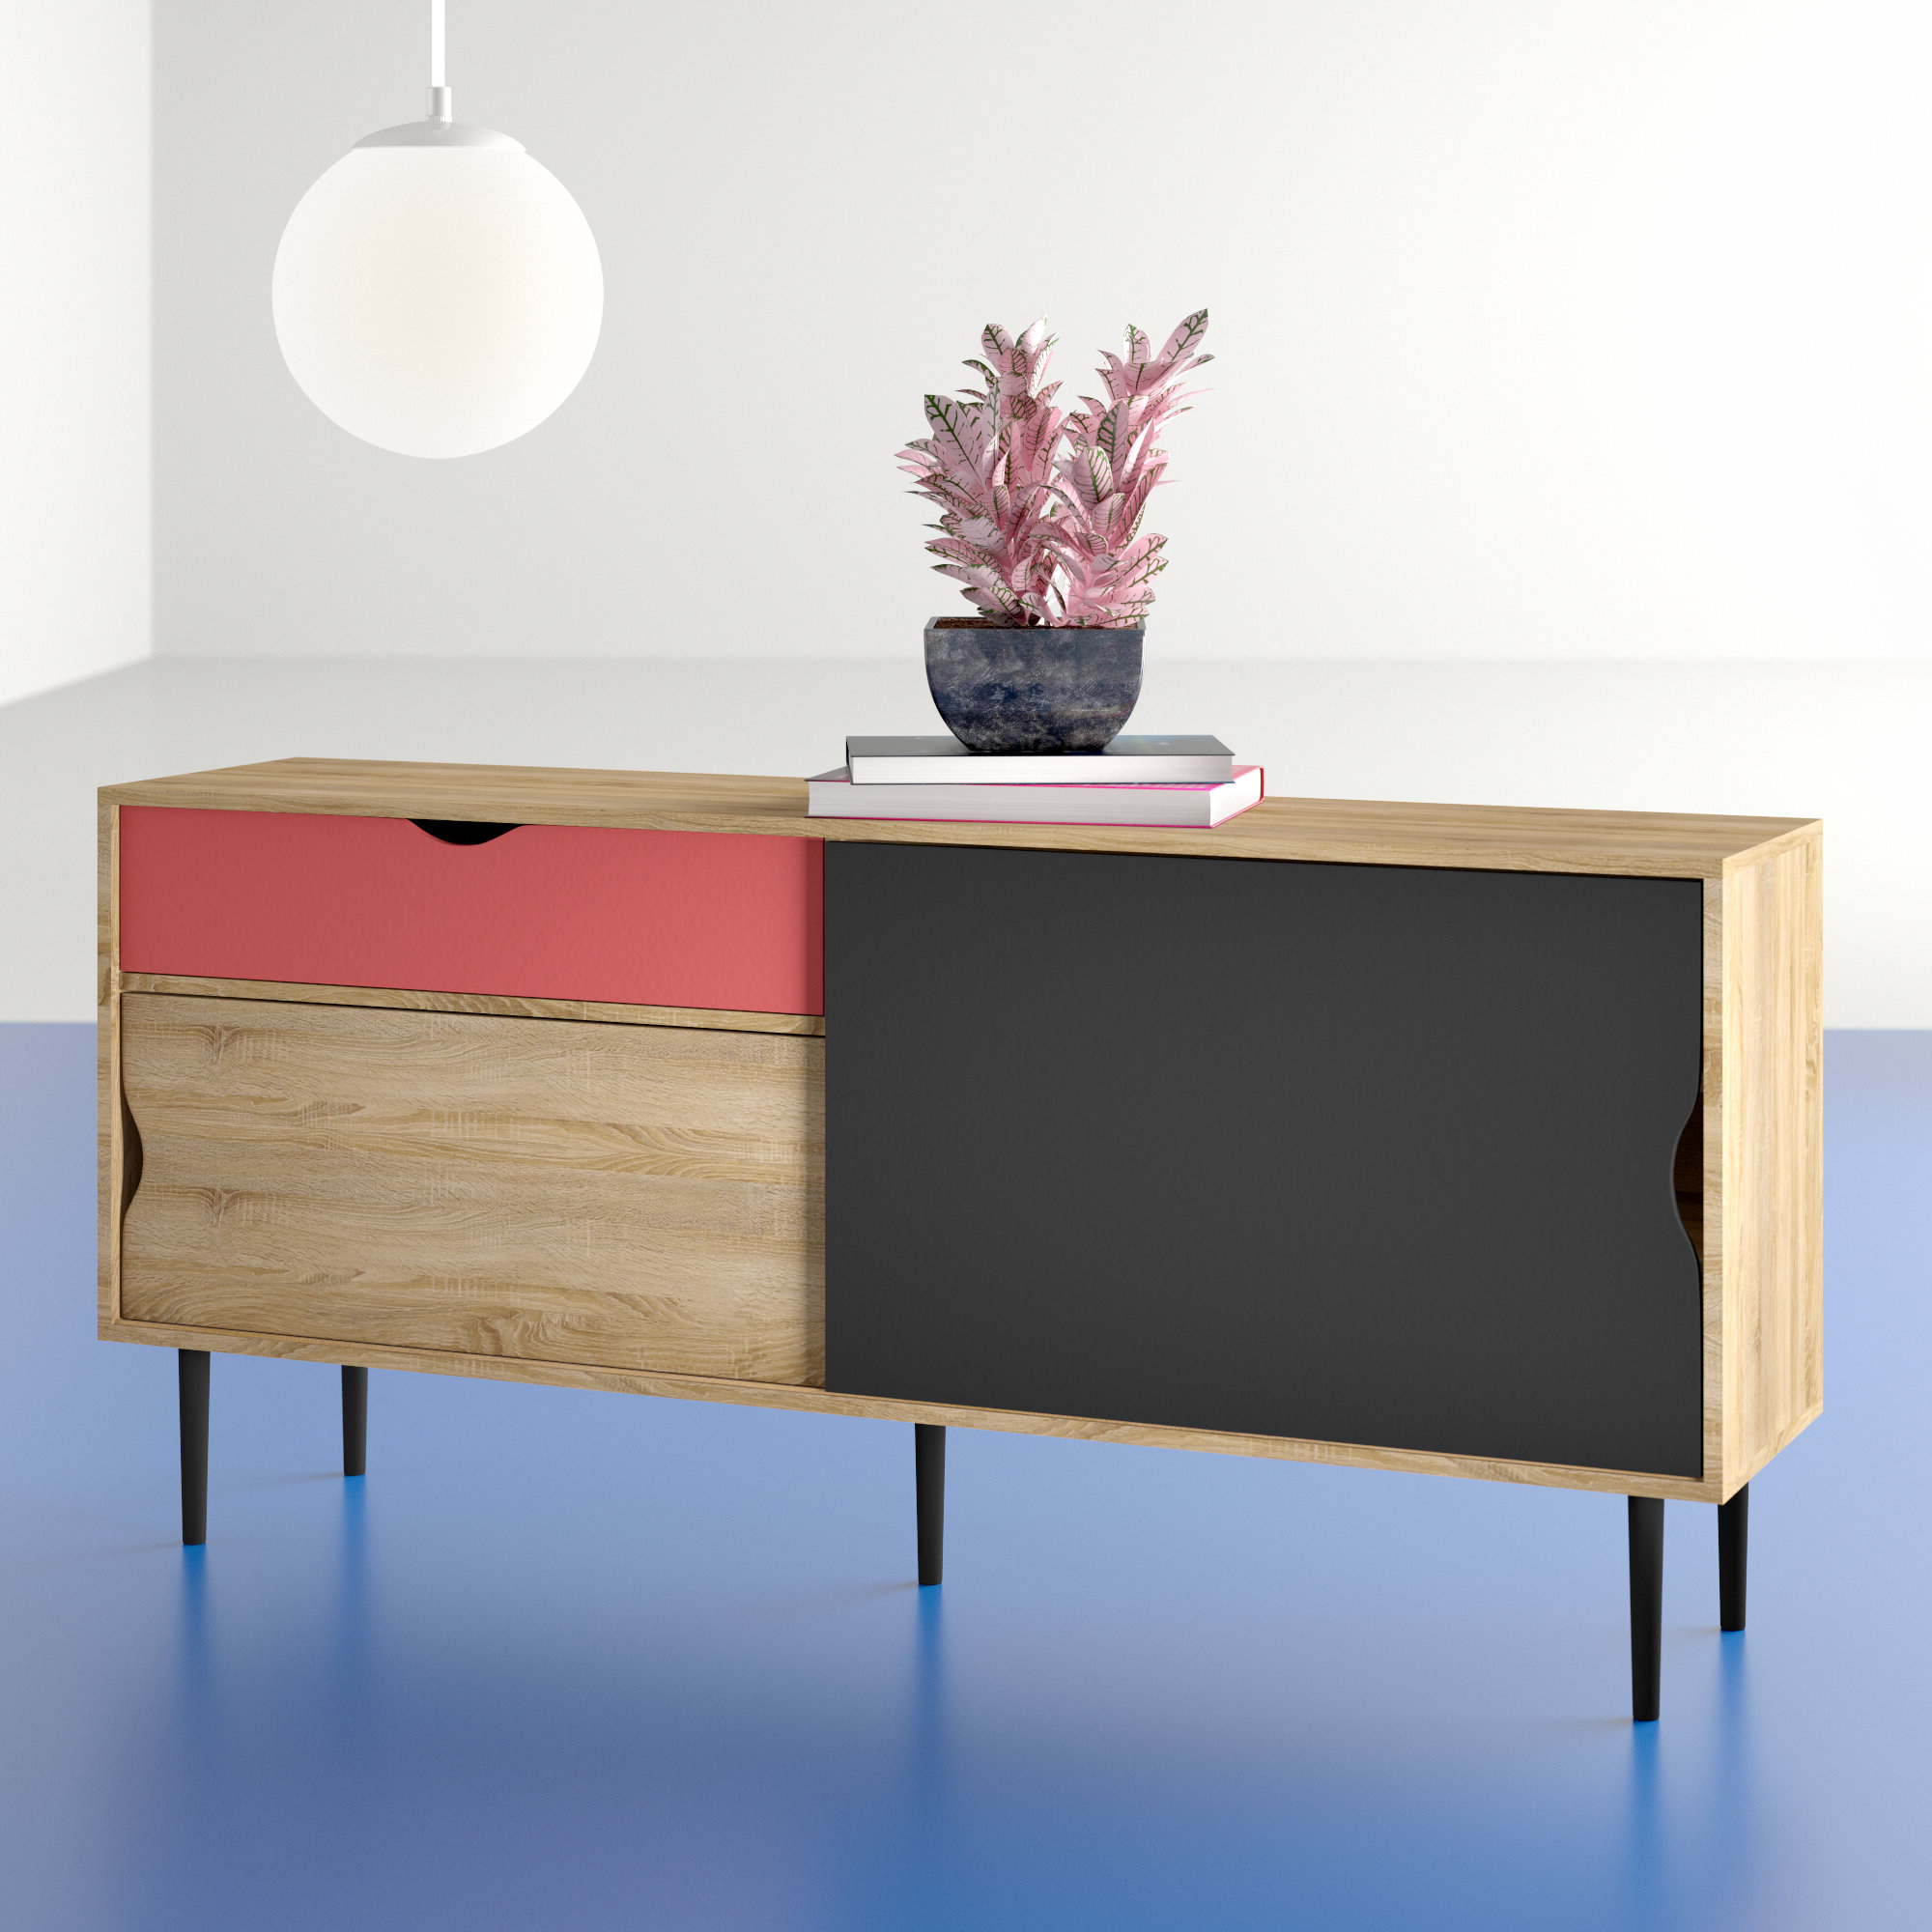 Hashtag Home Dovray Buffet Table & Reviews | Wayfair With Regard To Mid Century Modern Glossy White Buffets (View 6 of 20)